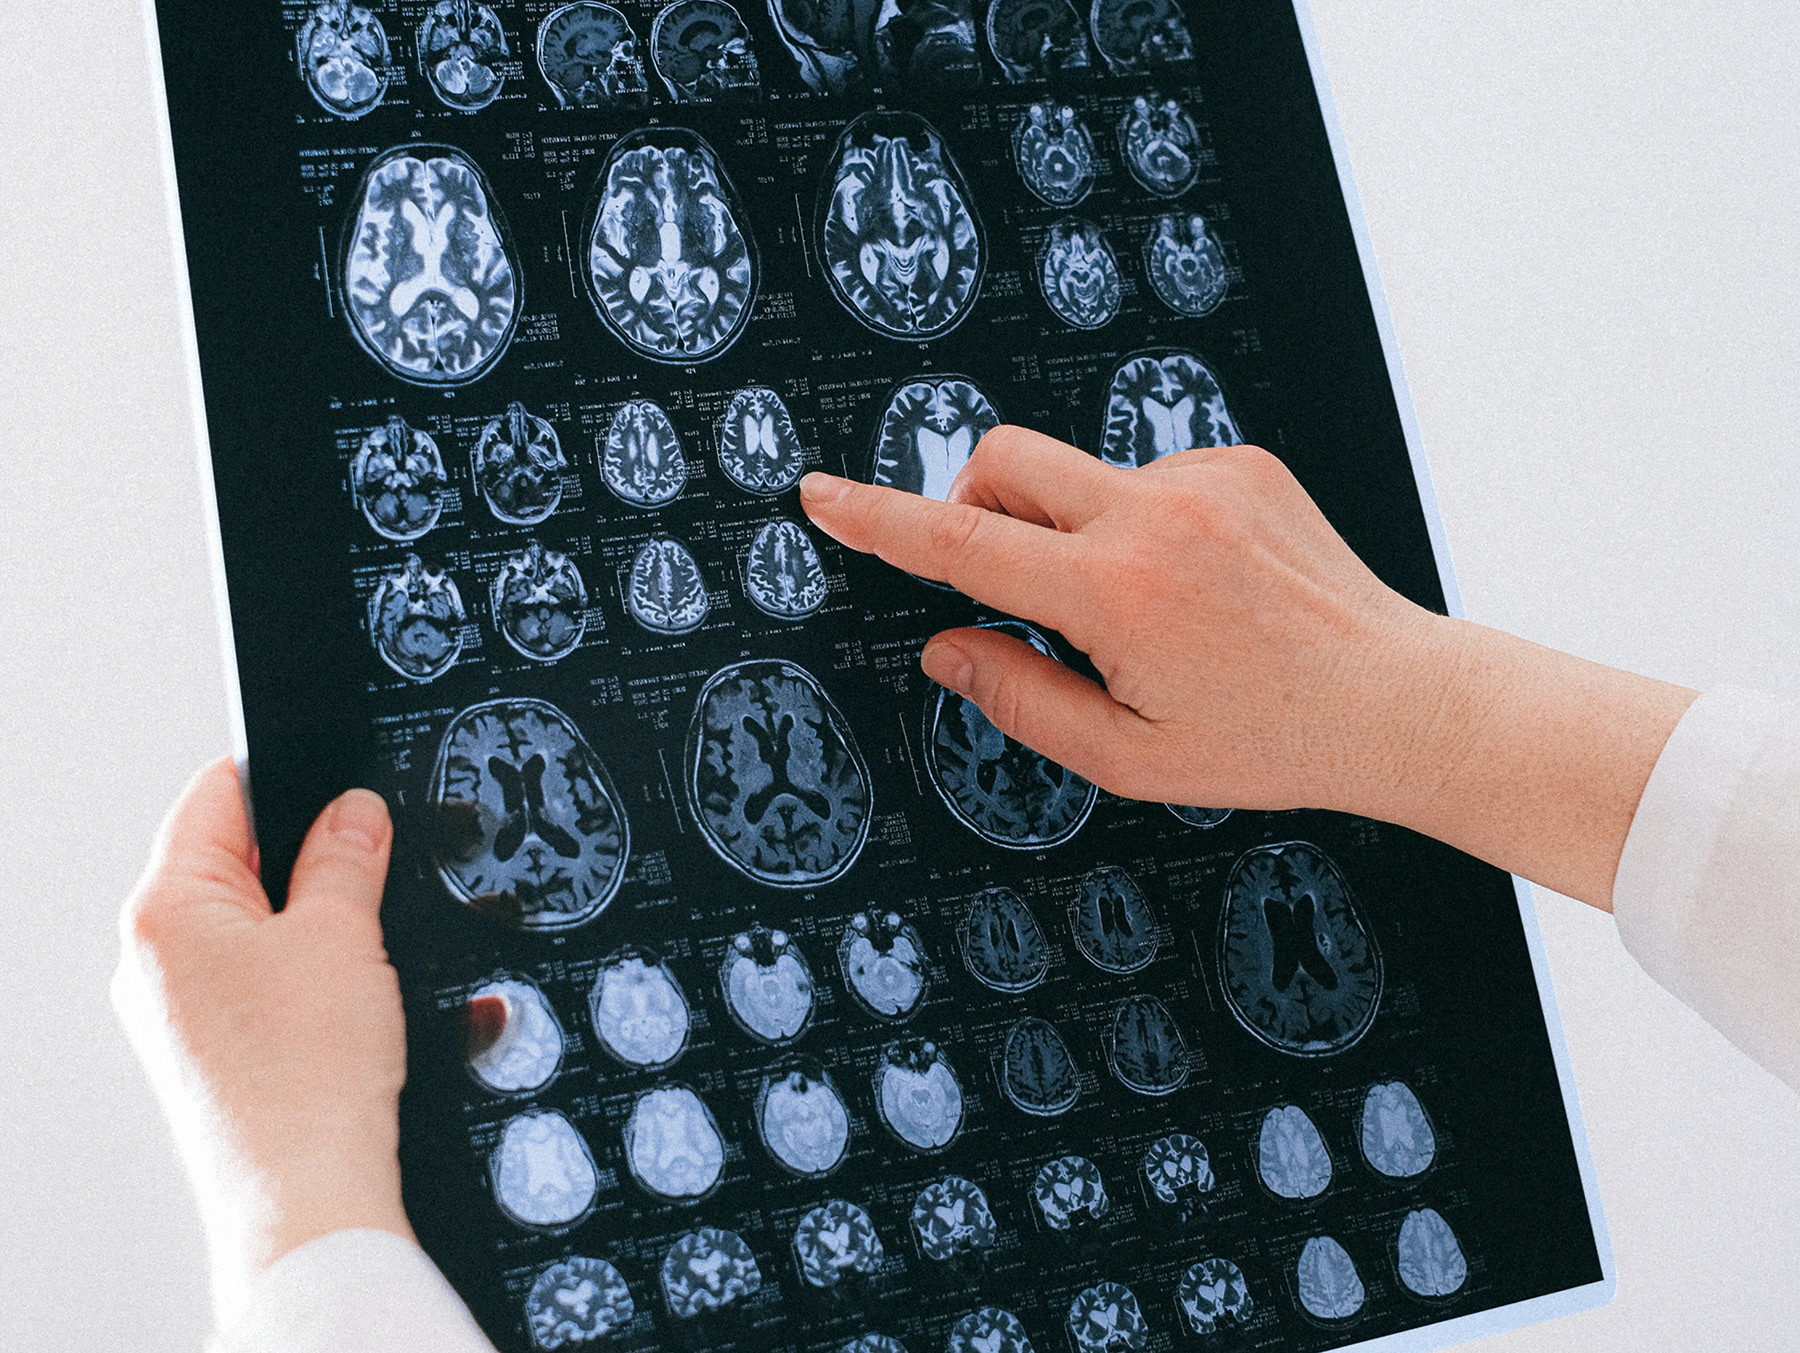 patient scan being examined by doctor